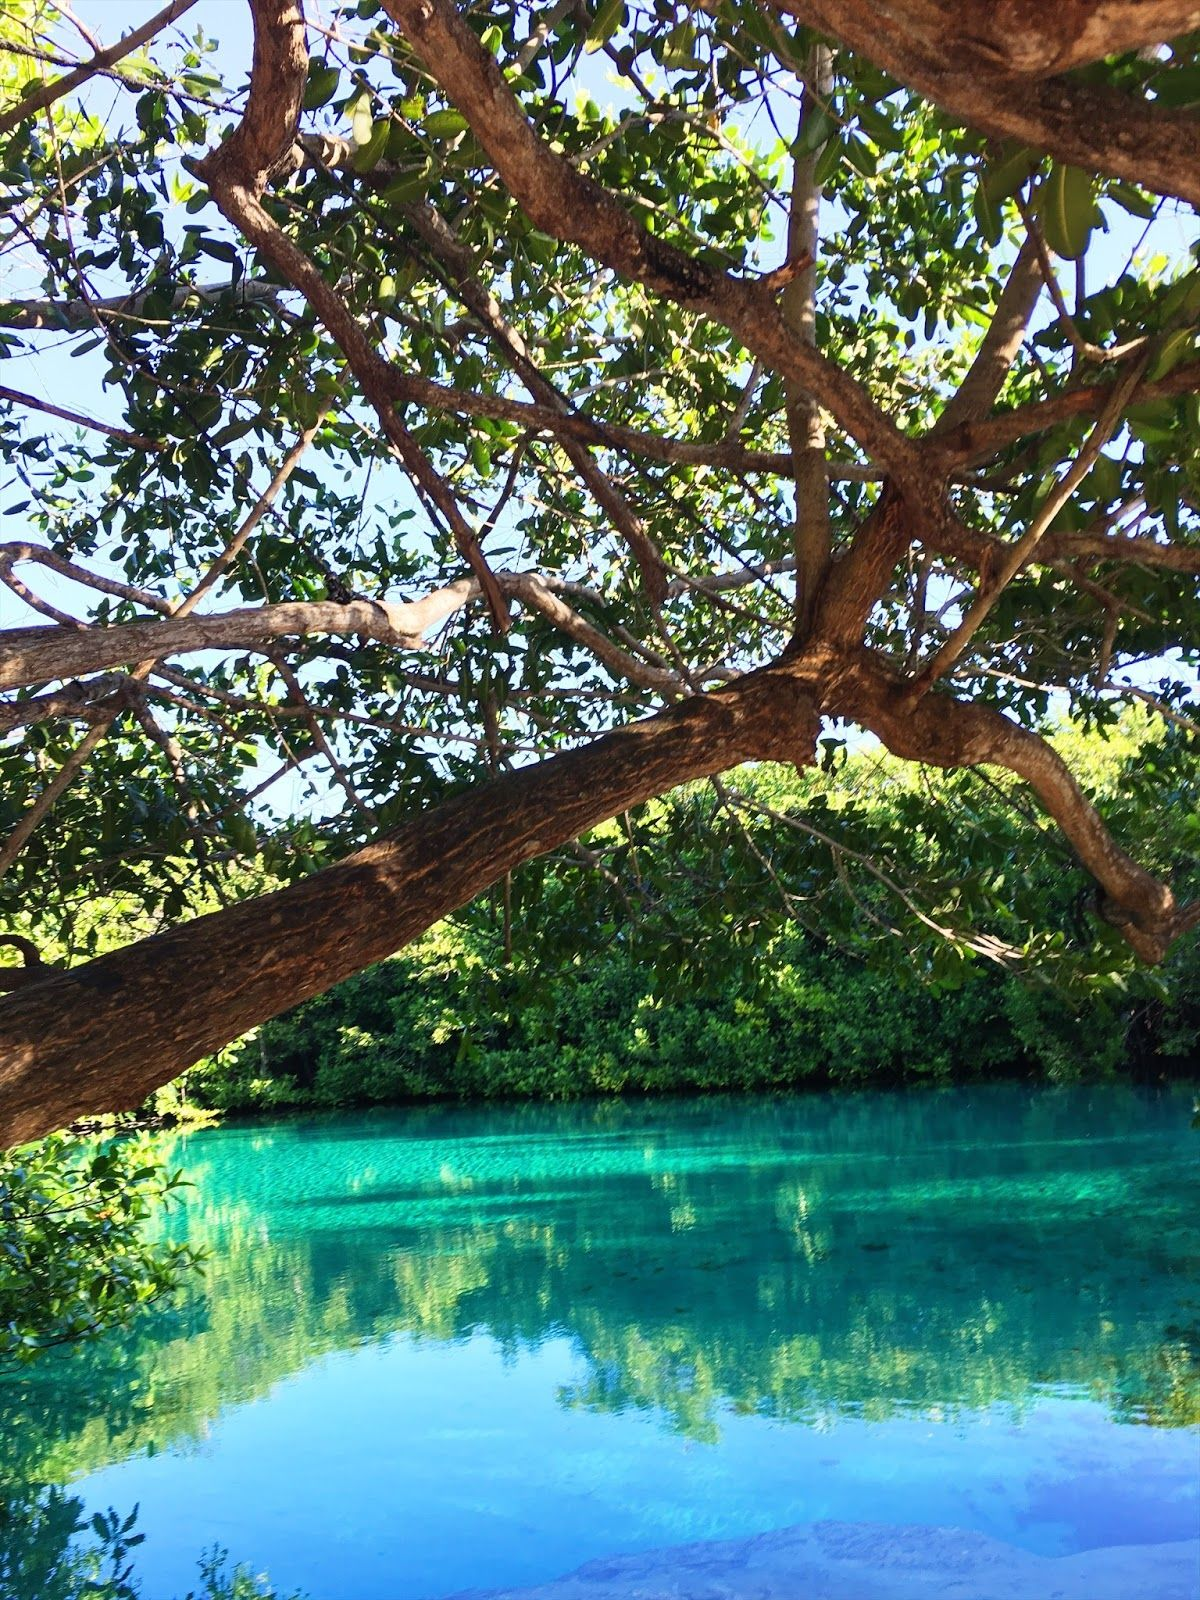 From the corners of the Curve.: A travel guide to Tulum